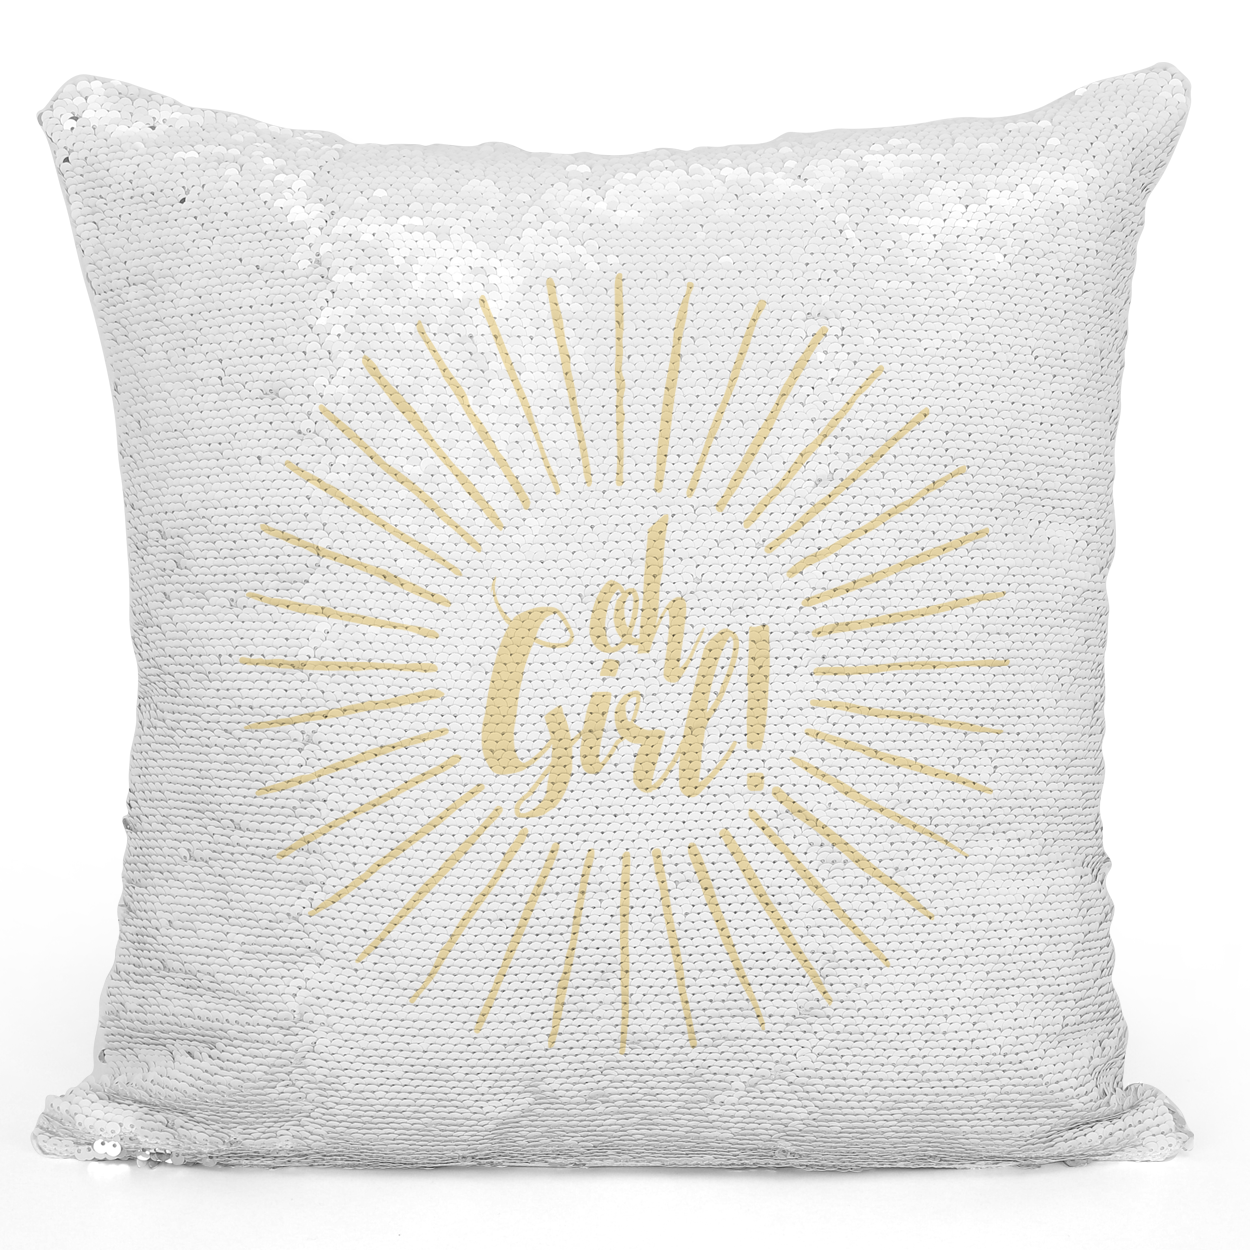 Sequin Pillow Magic Mermaid Throw Pillow Oh Girl Comic Style Pillow - Durable White 16 x 16 inch Square Livingroom Sofa Couch Pillow Loud Universe